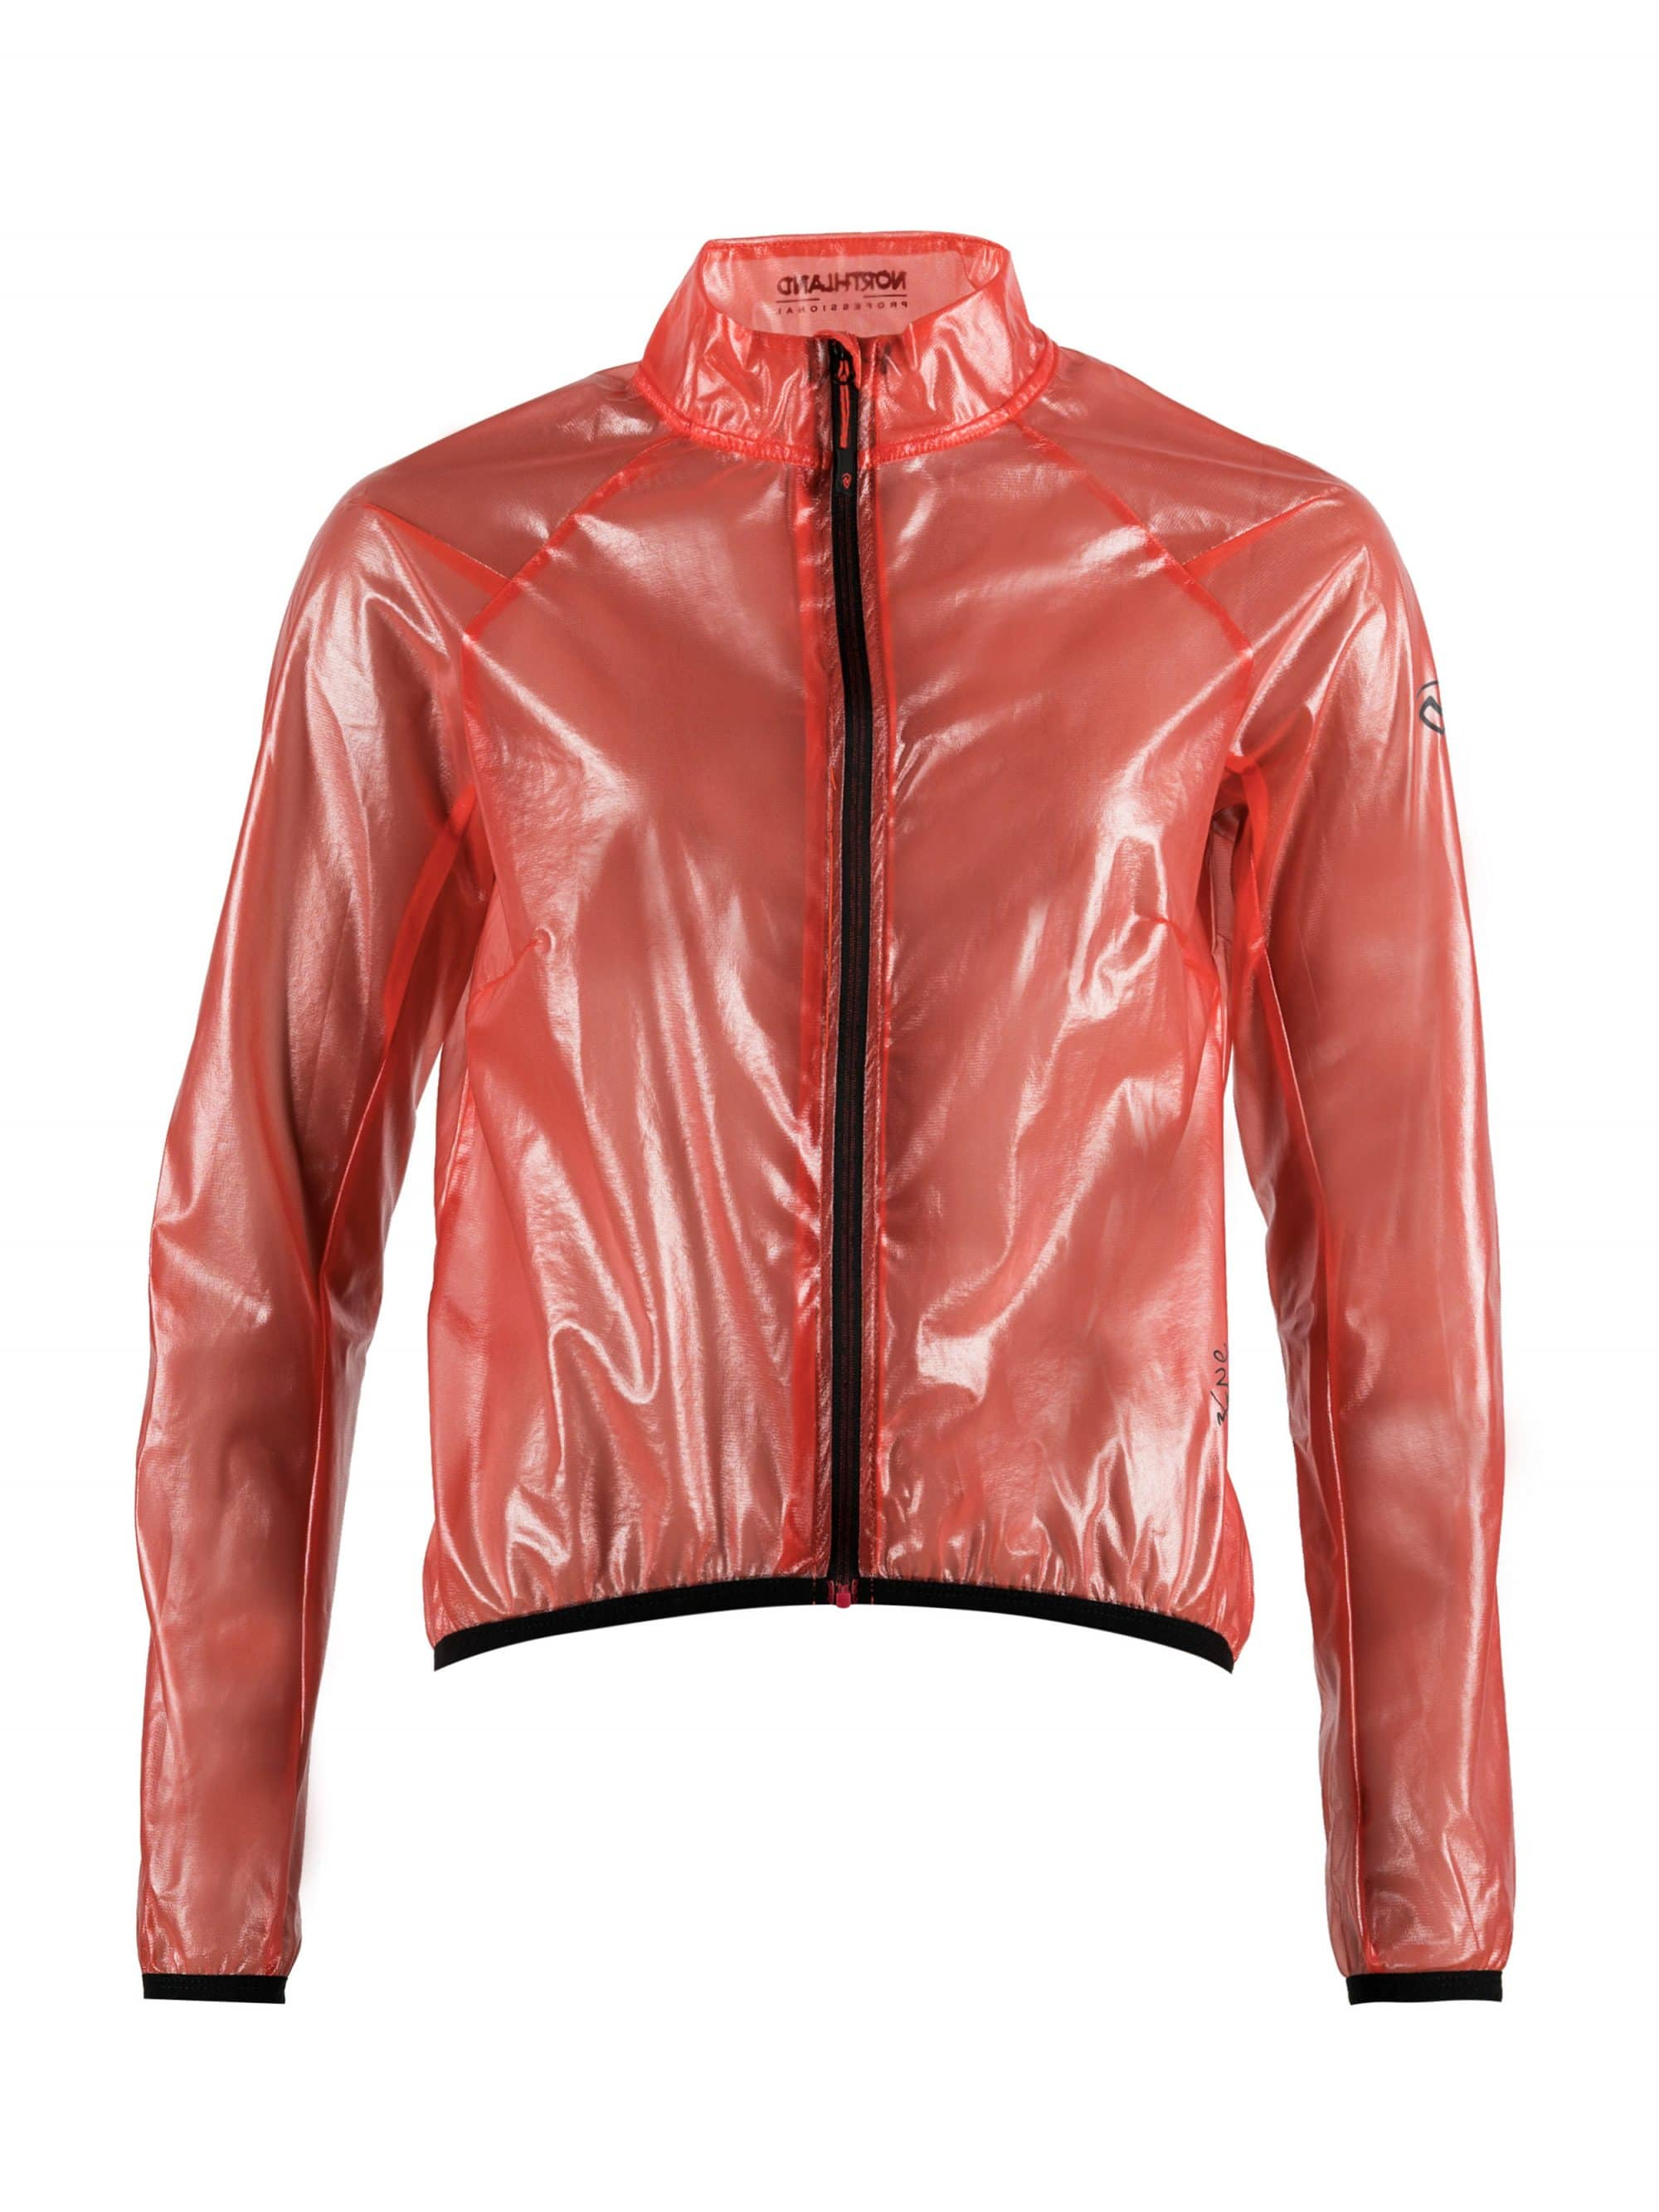 02-09544-fire red_A